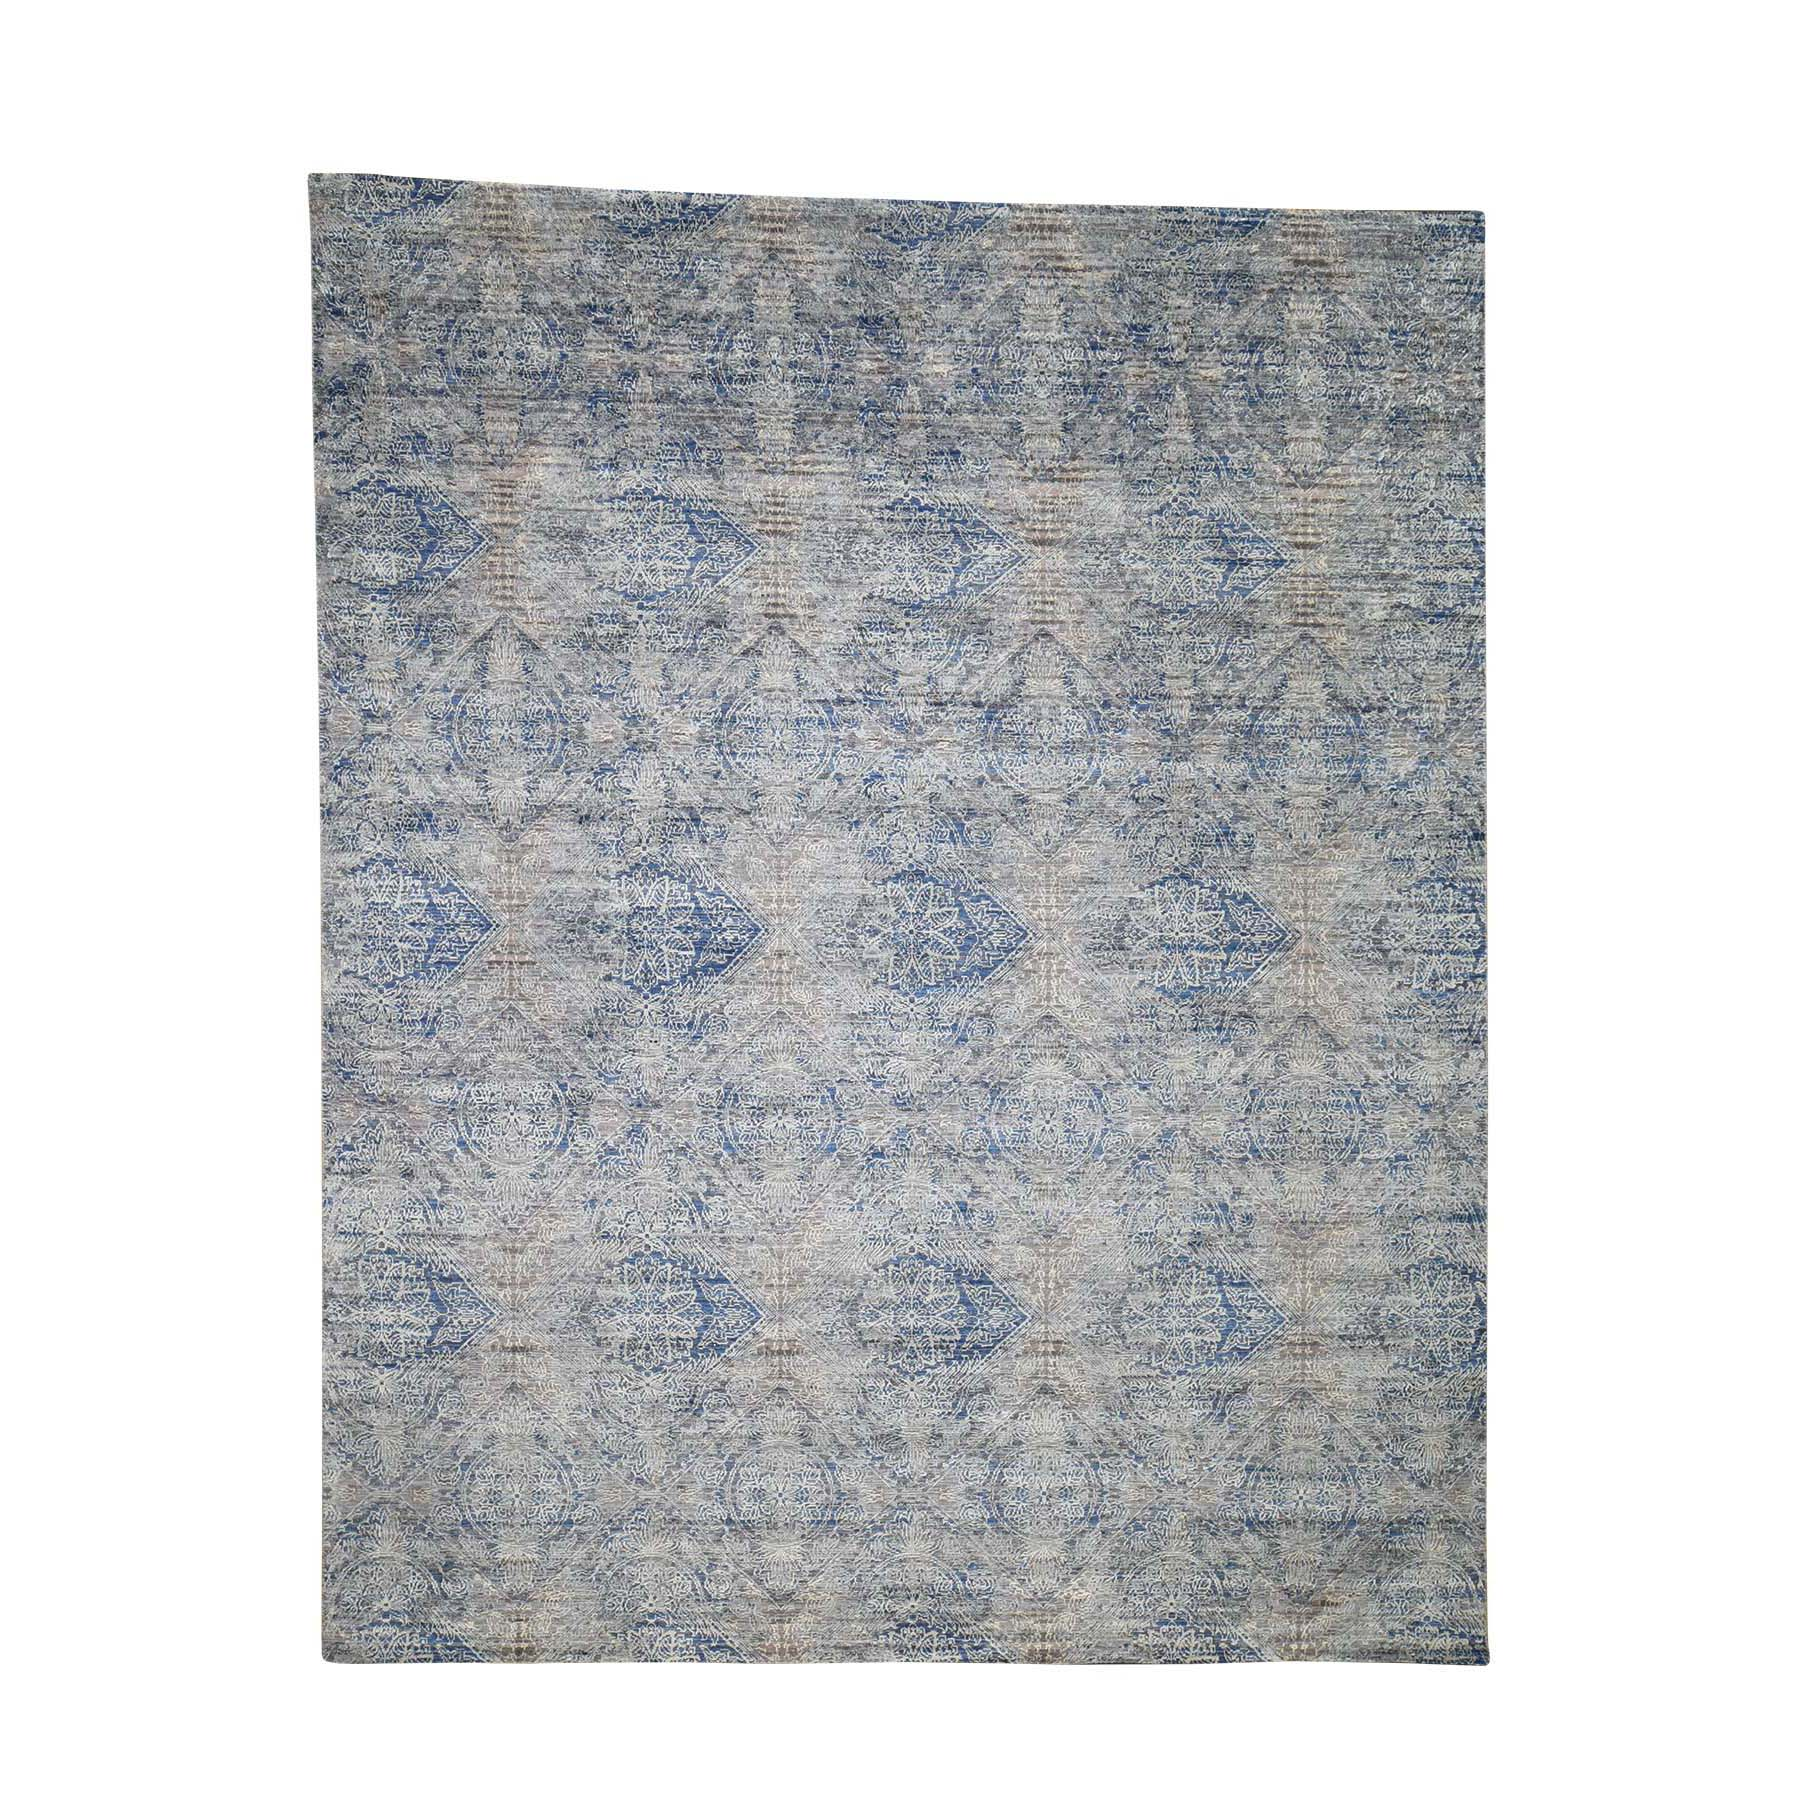 8'x10' Silk With Textured Wool Denim Blue Erased Rossette Design Hand-Knotted Oriental Rug